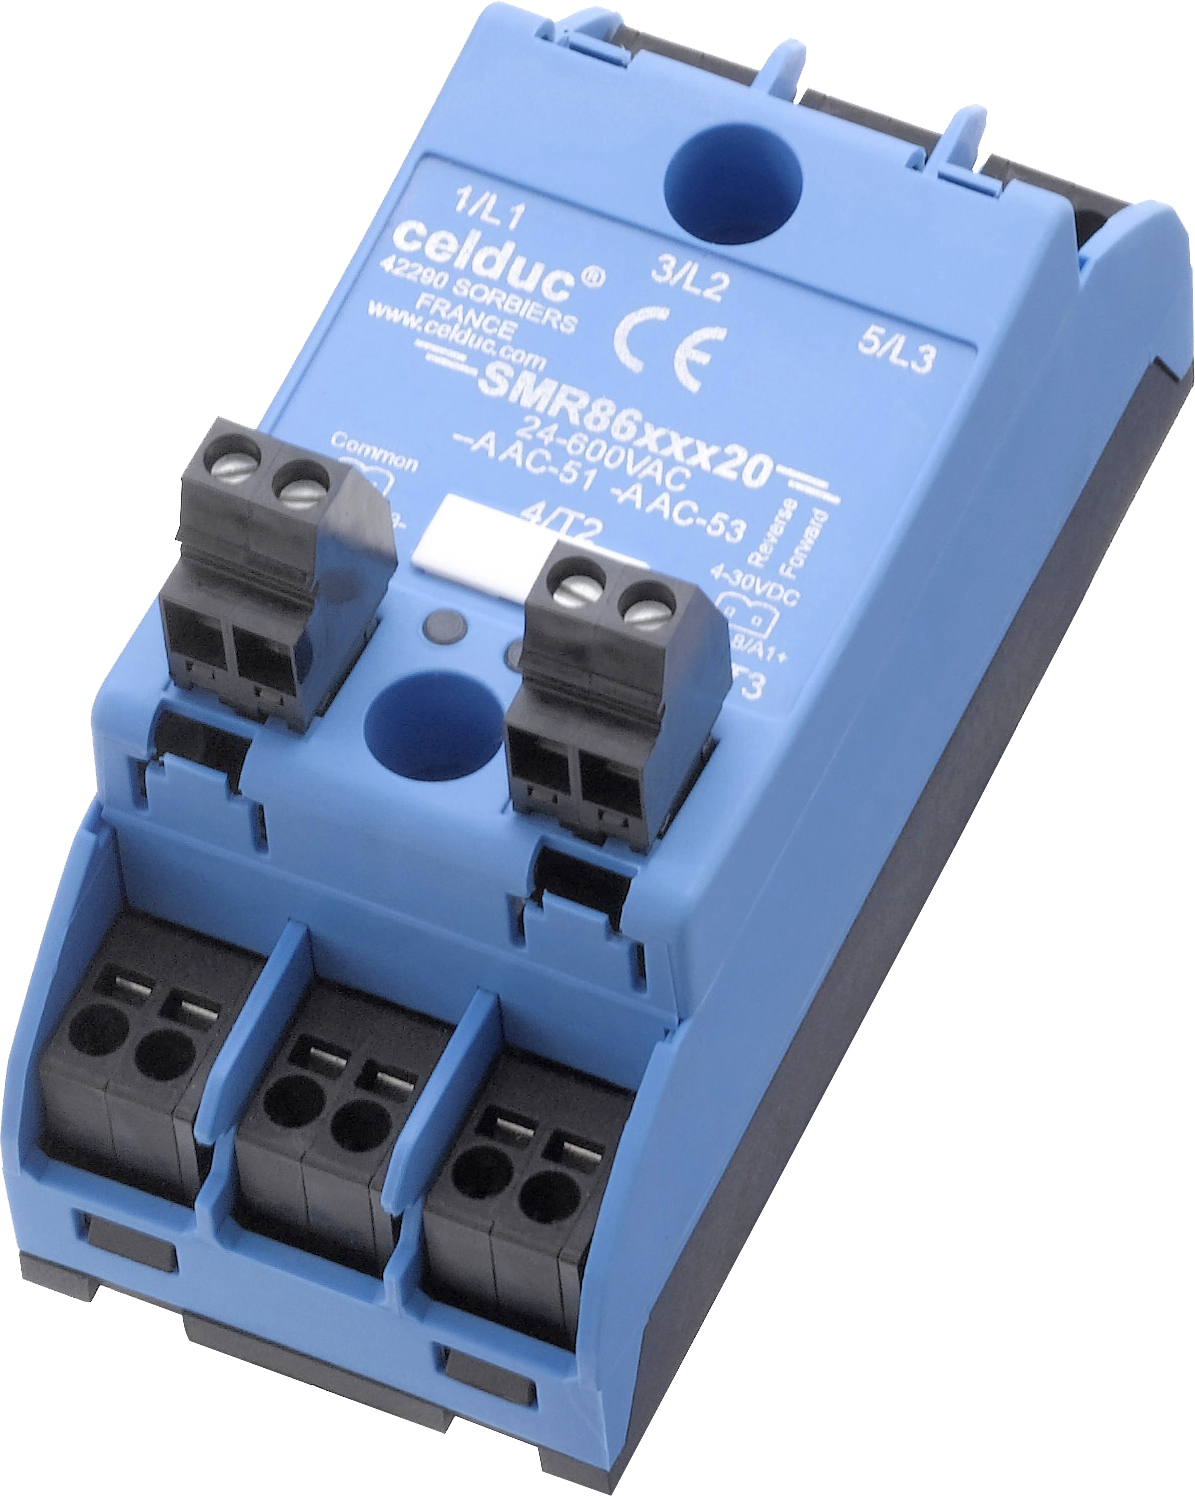 Three Phase Solid State Relays Contactors Celduc Relais Relay Vs Scr Sightpac Range